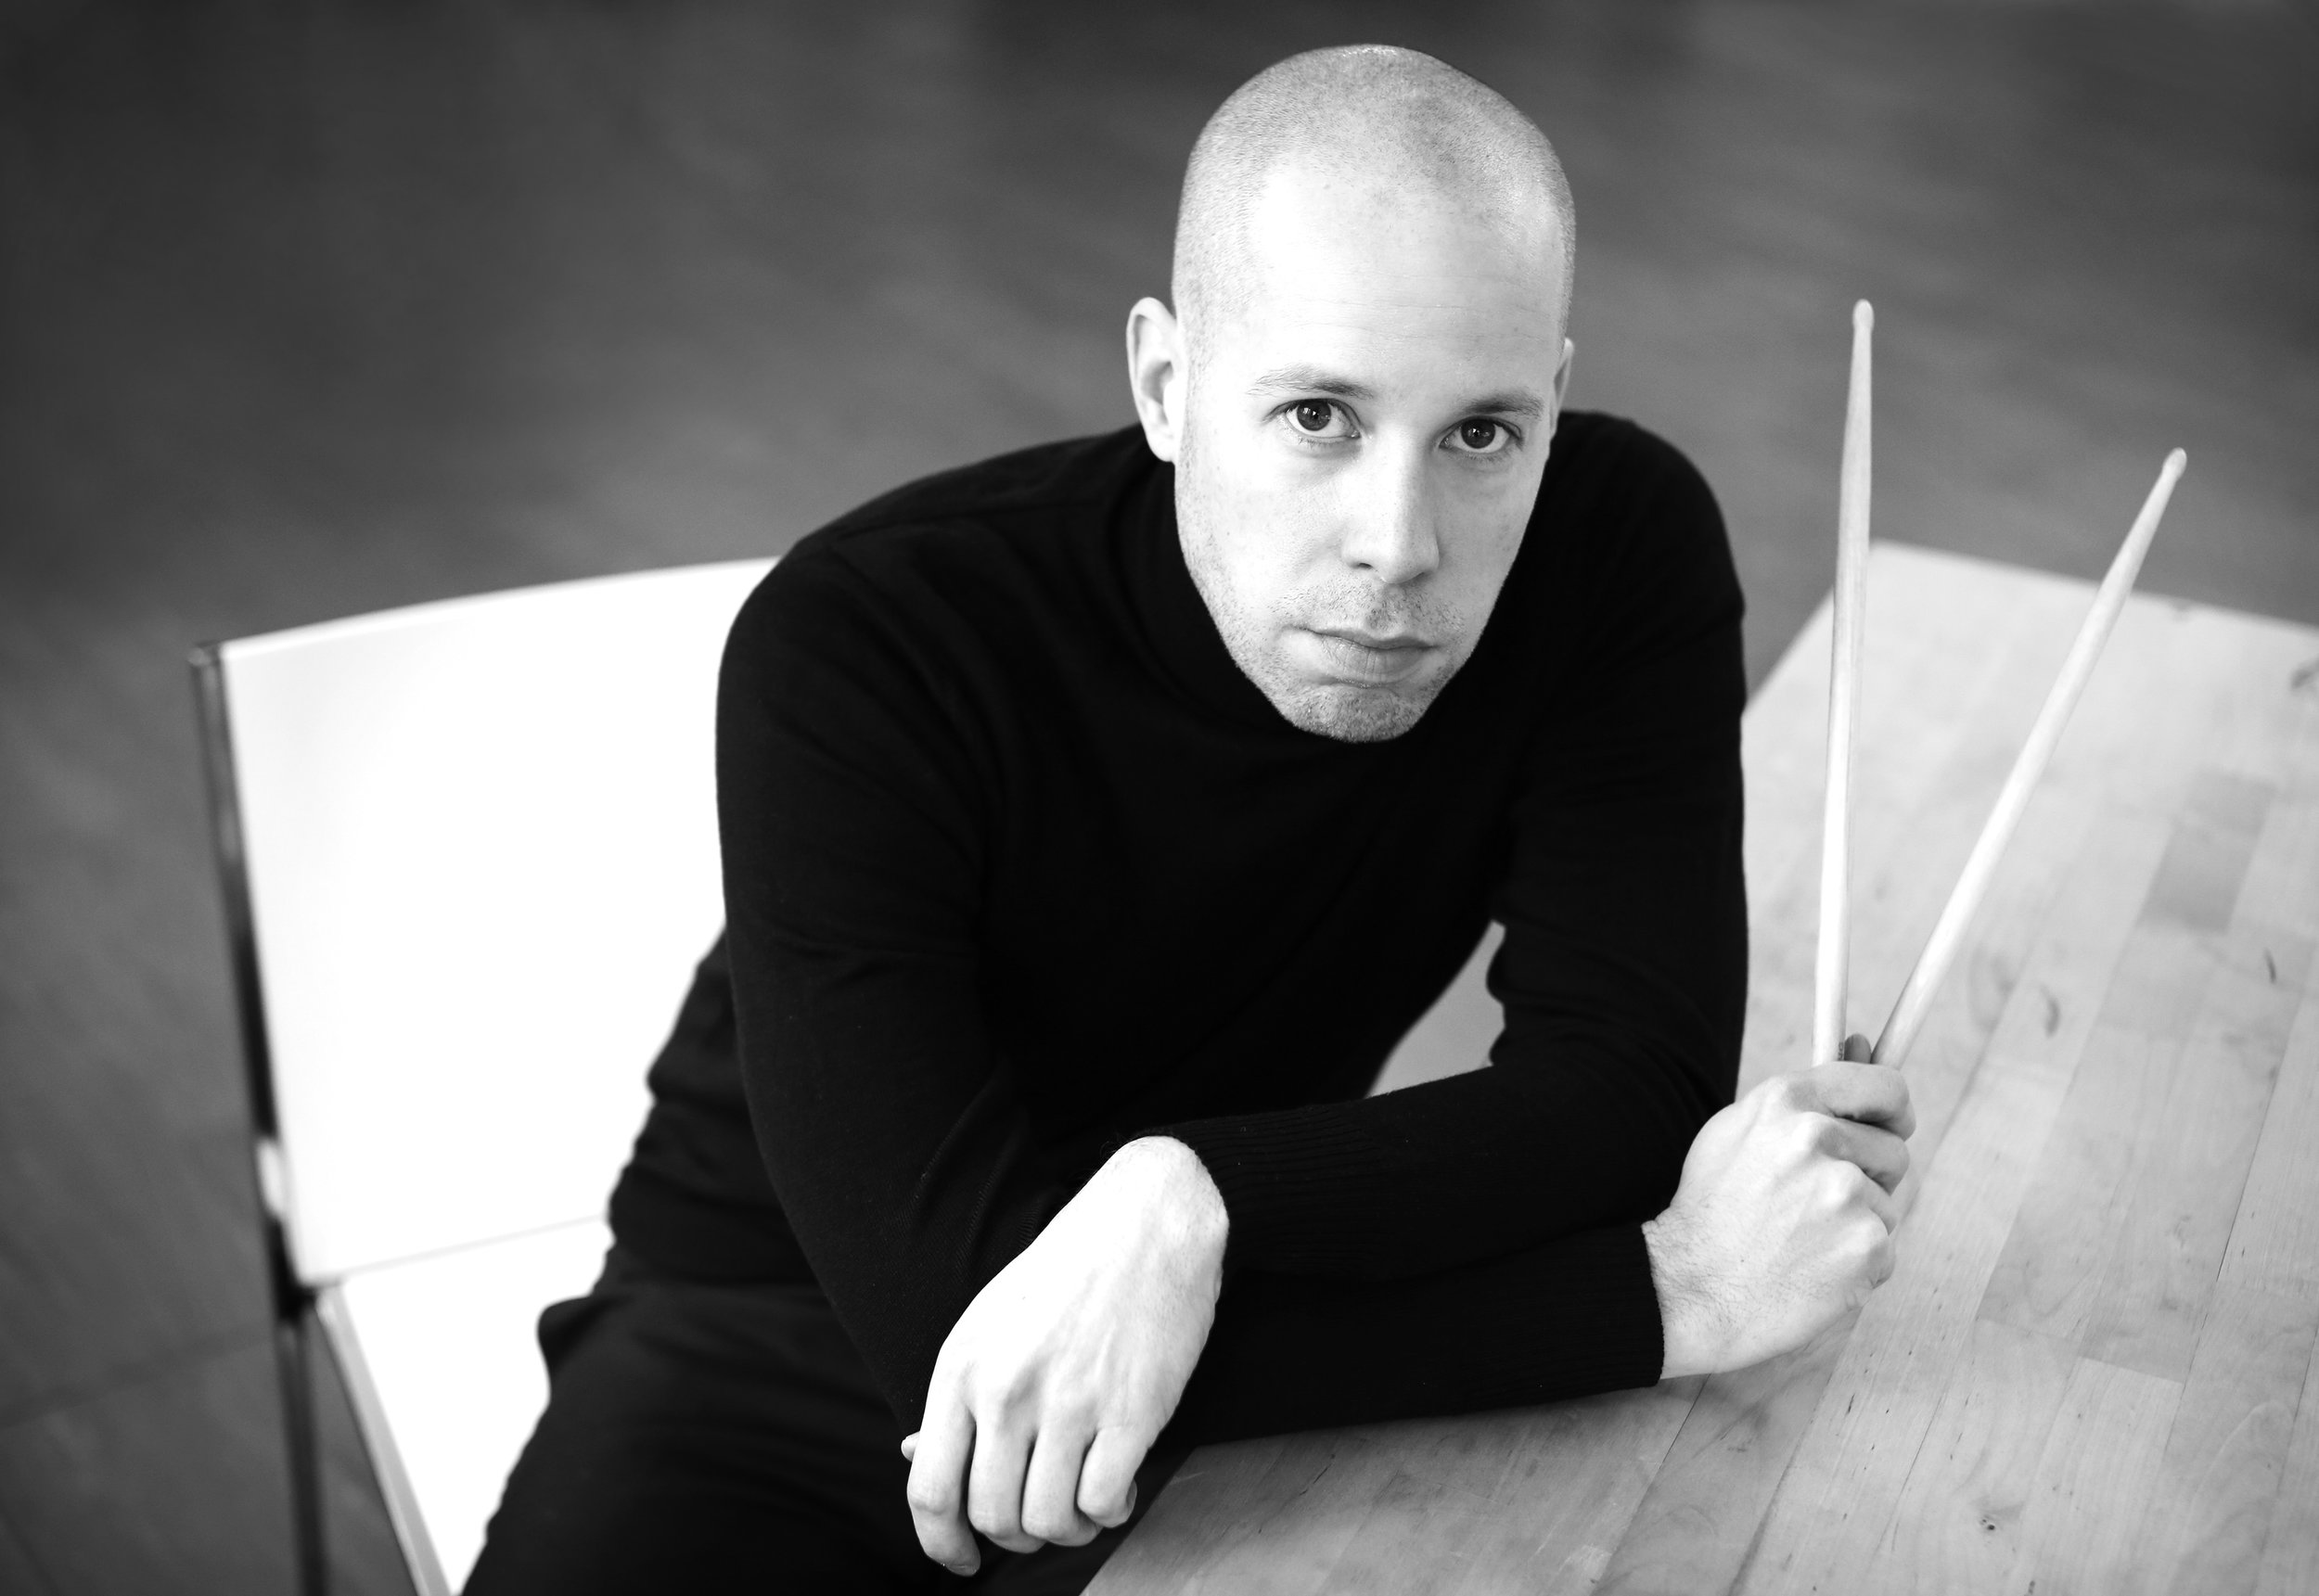 Jussi Lehtonen, drums and percussions